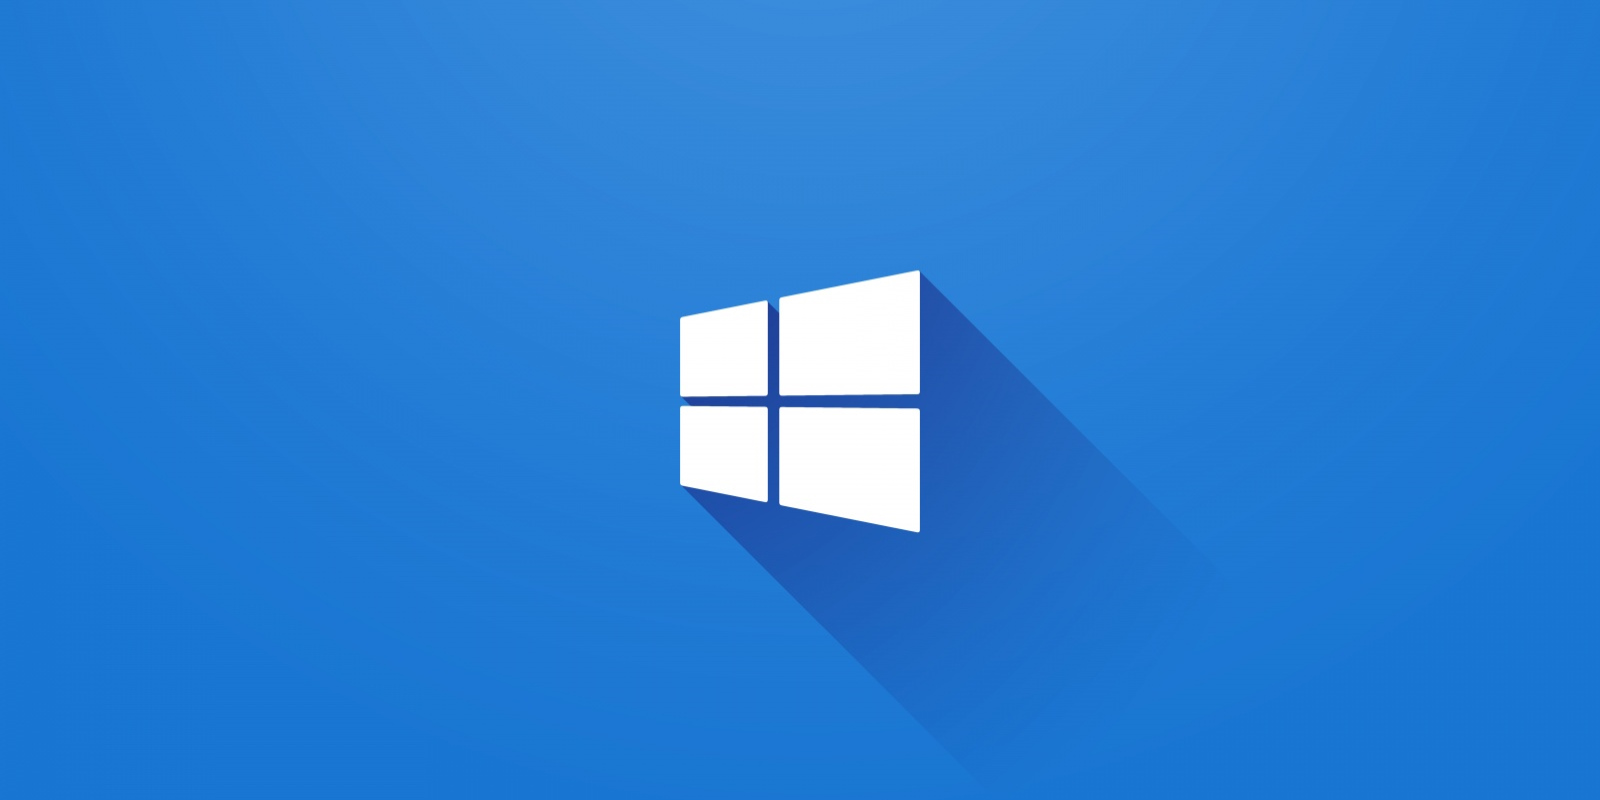 Windows 10 KB4586819 update fixes gaming and USB 3.0 issues